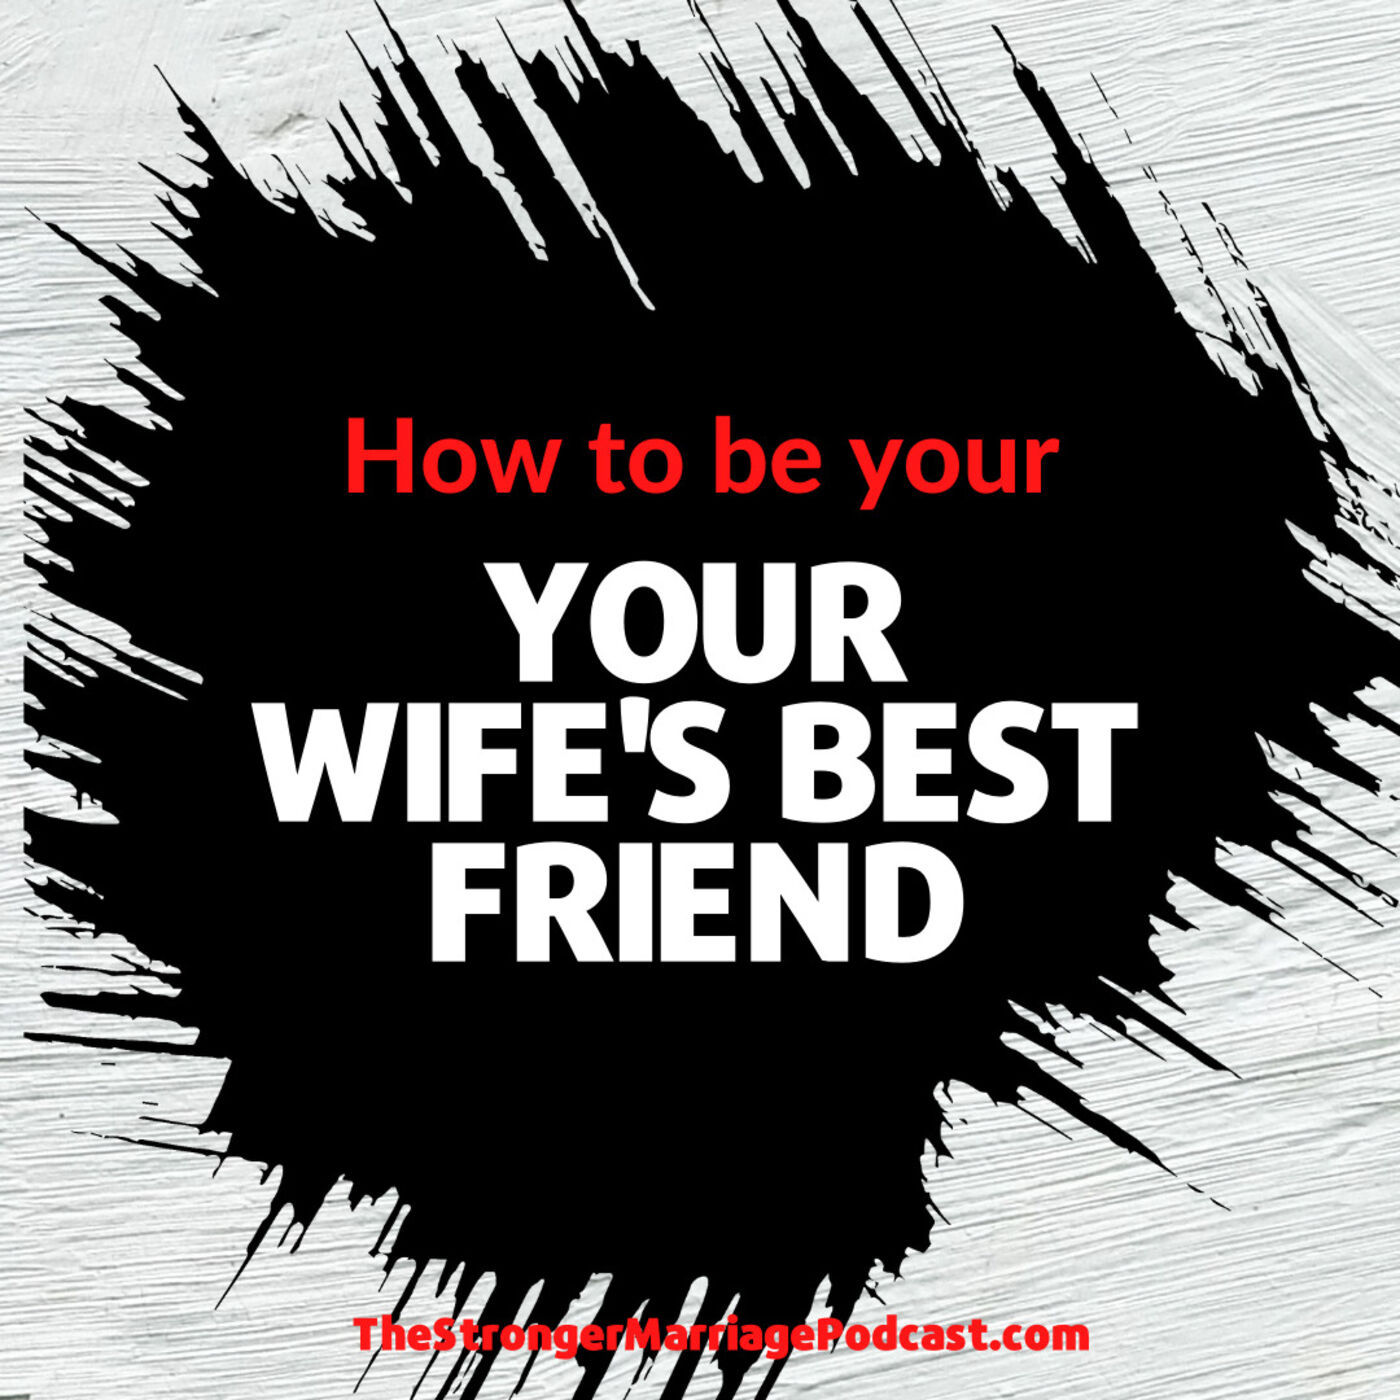 How to be Your Wife's BEST FRIEND